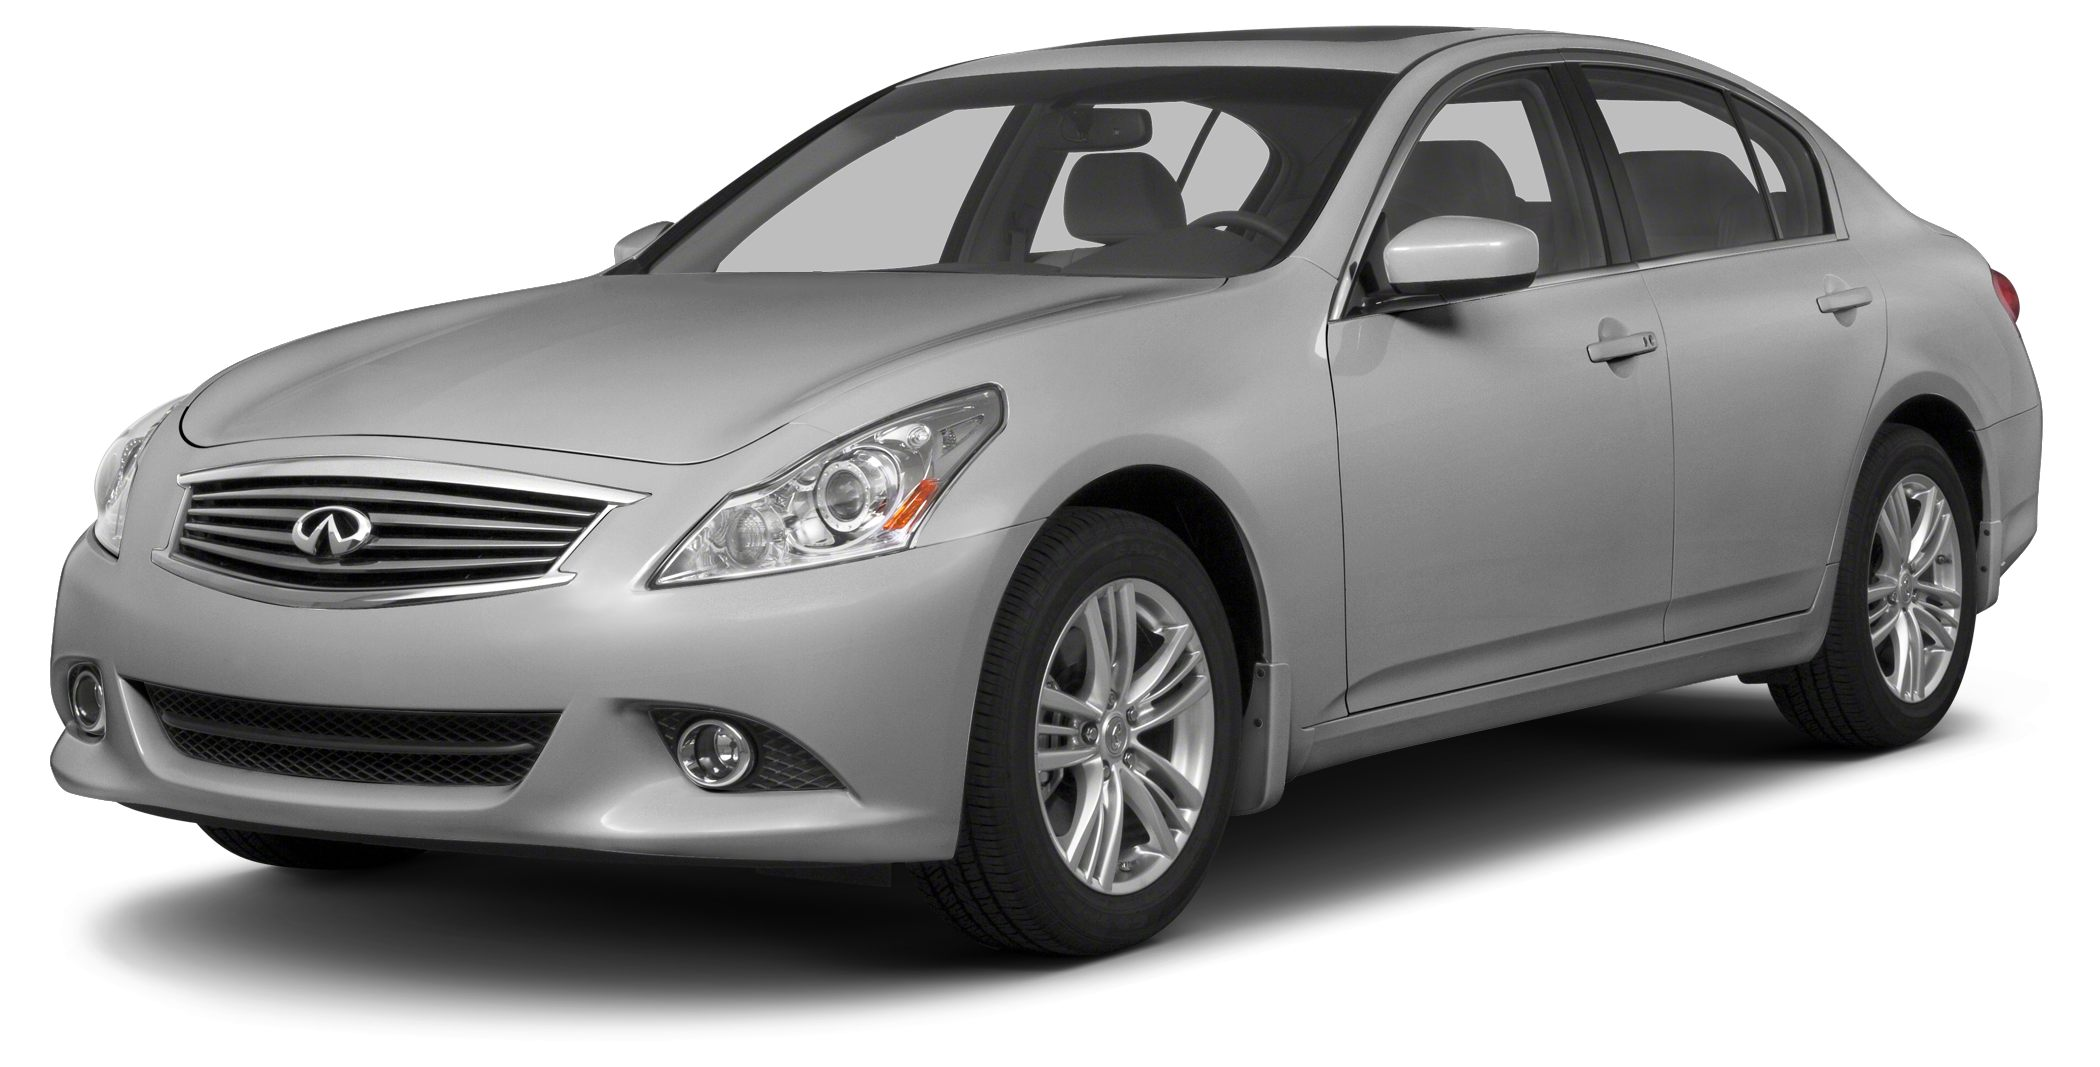 2013 INFINITI G37x Base 1 OWNER  AWD 150 PT PRE OWNED INSPECTION Miles 48403Color Liq